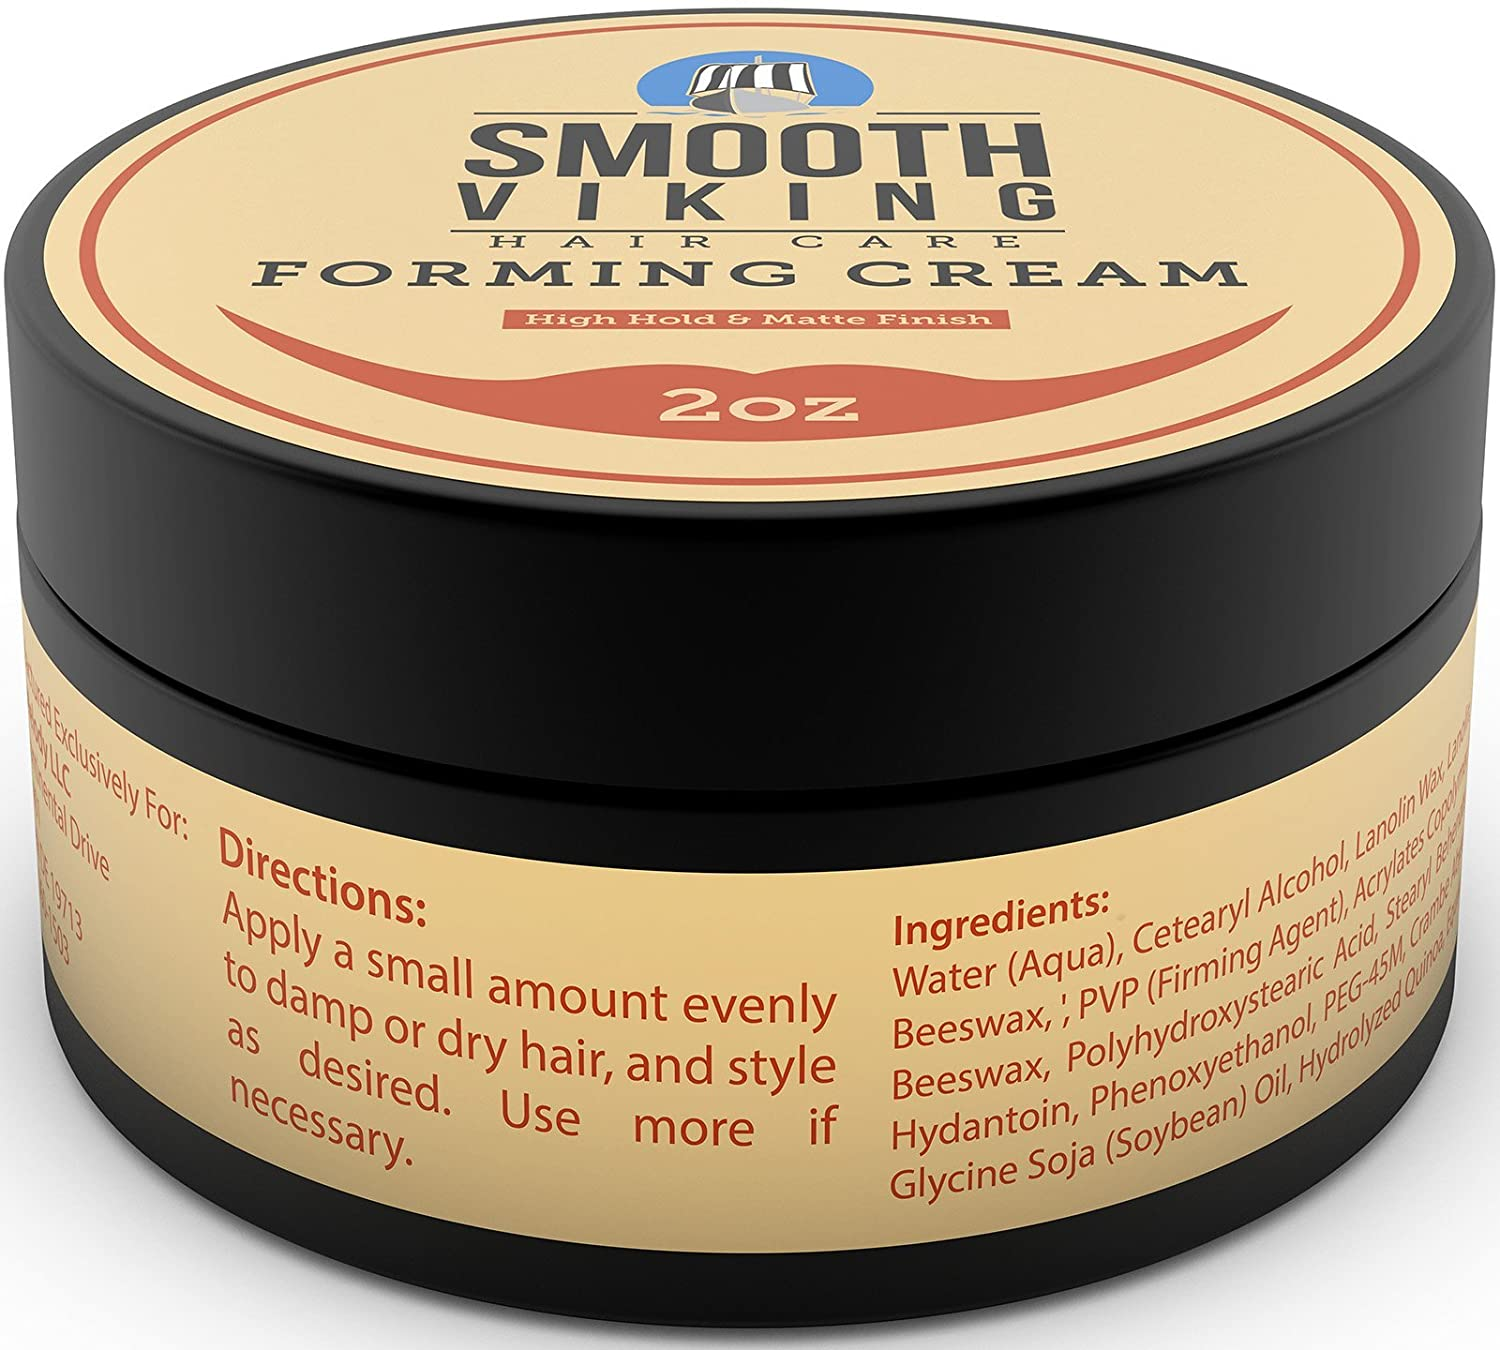 Forming Cream For Men   Hair Styling Cream For High Hold U0026 Matte Finish    Best Pliable Formula For Modern, Classic U0026 Slick Styles   Great For Short,  ...